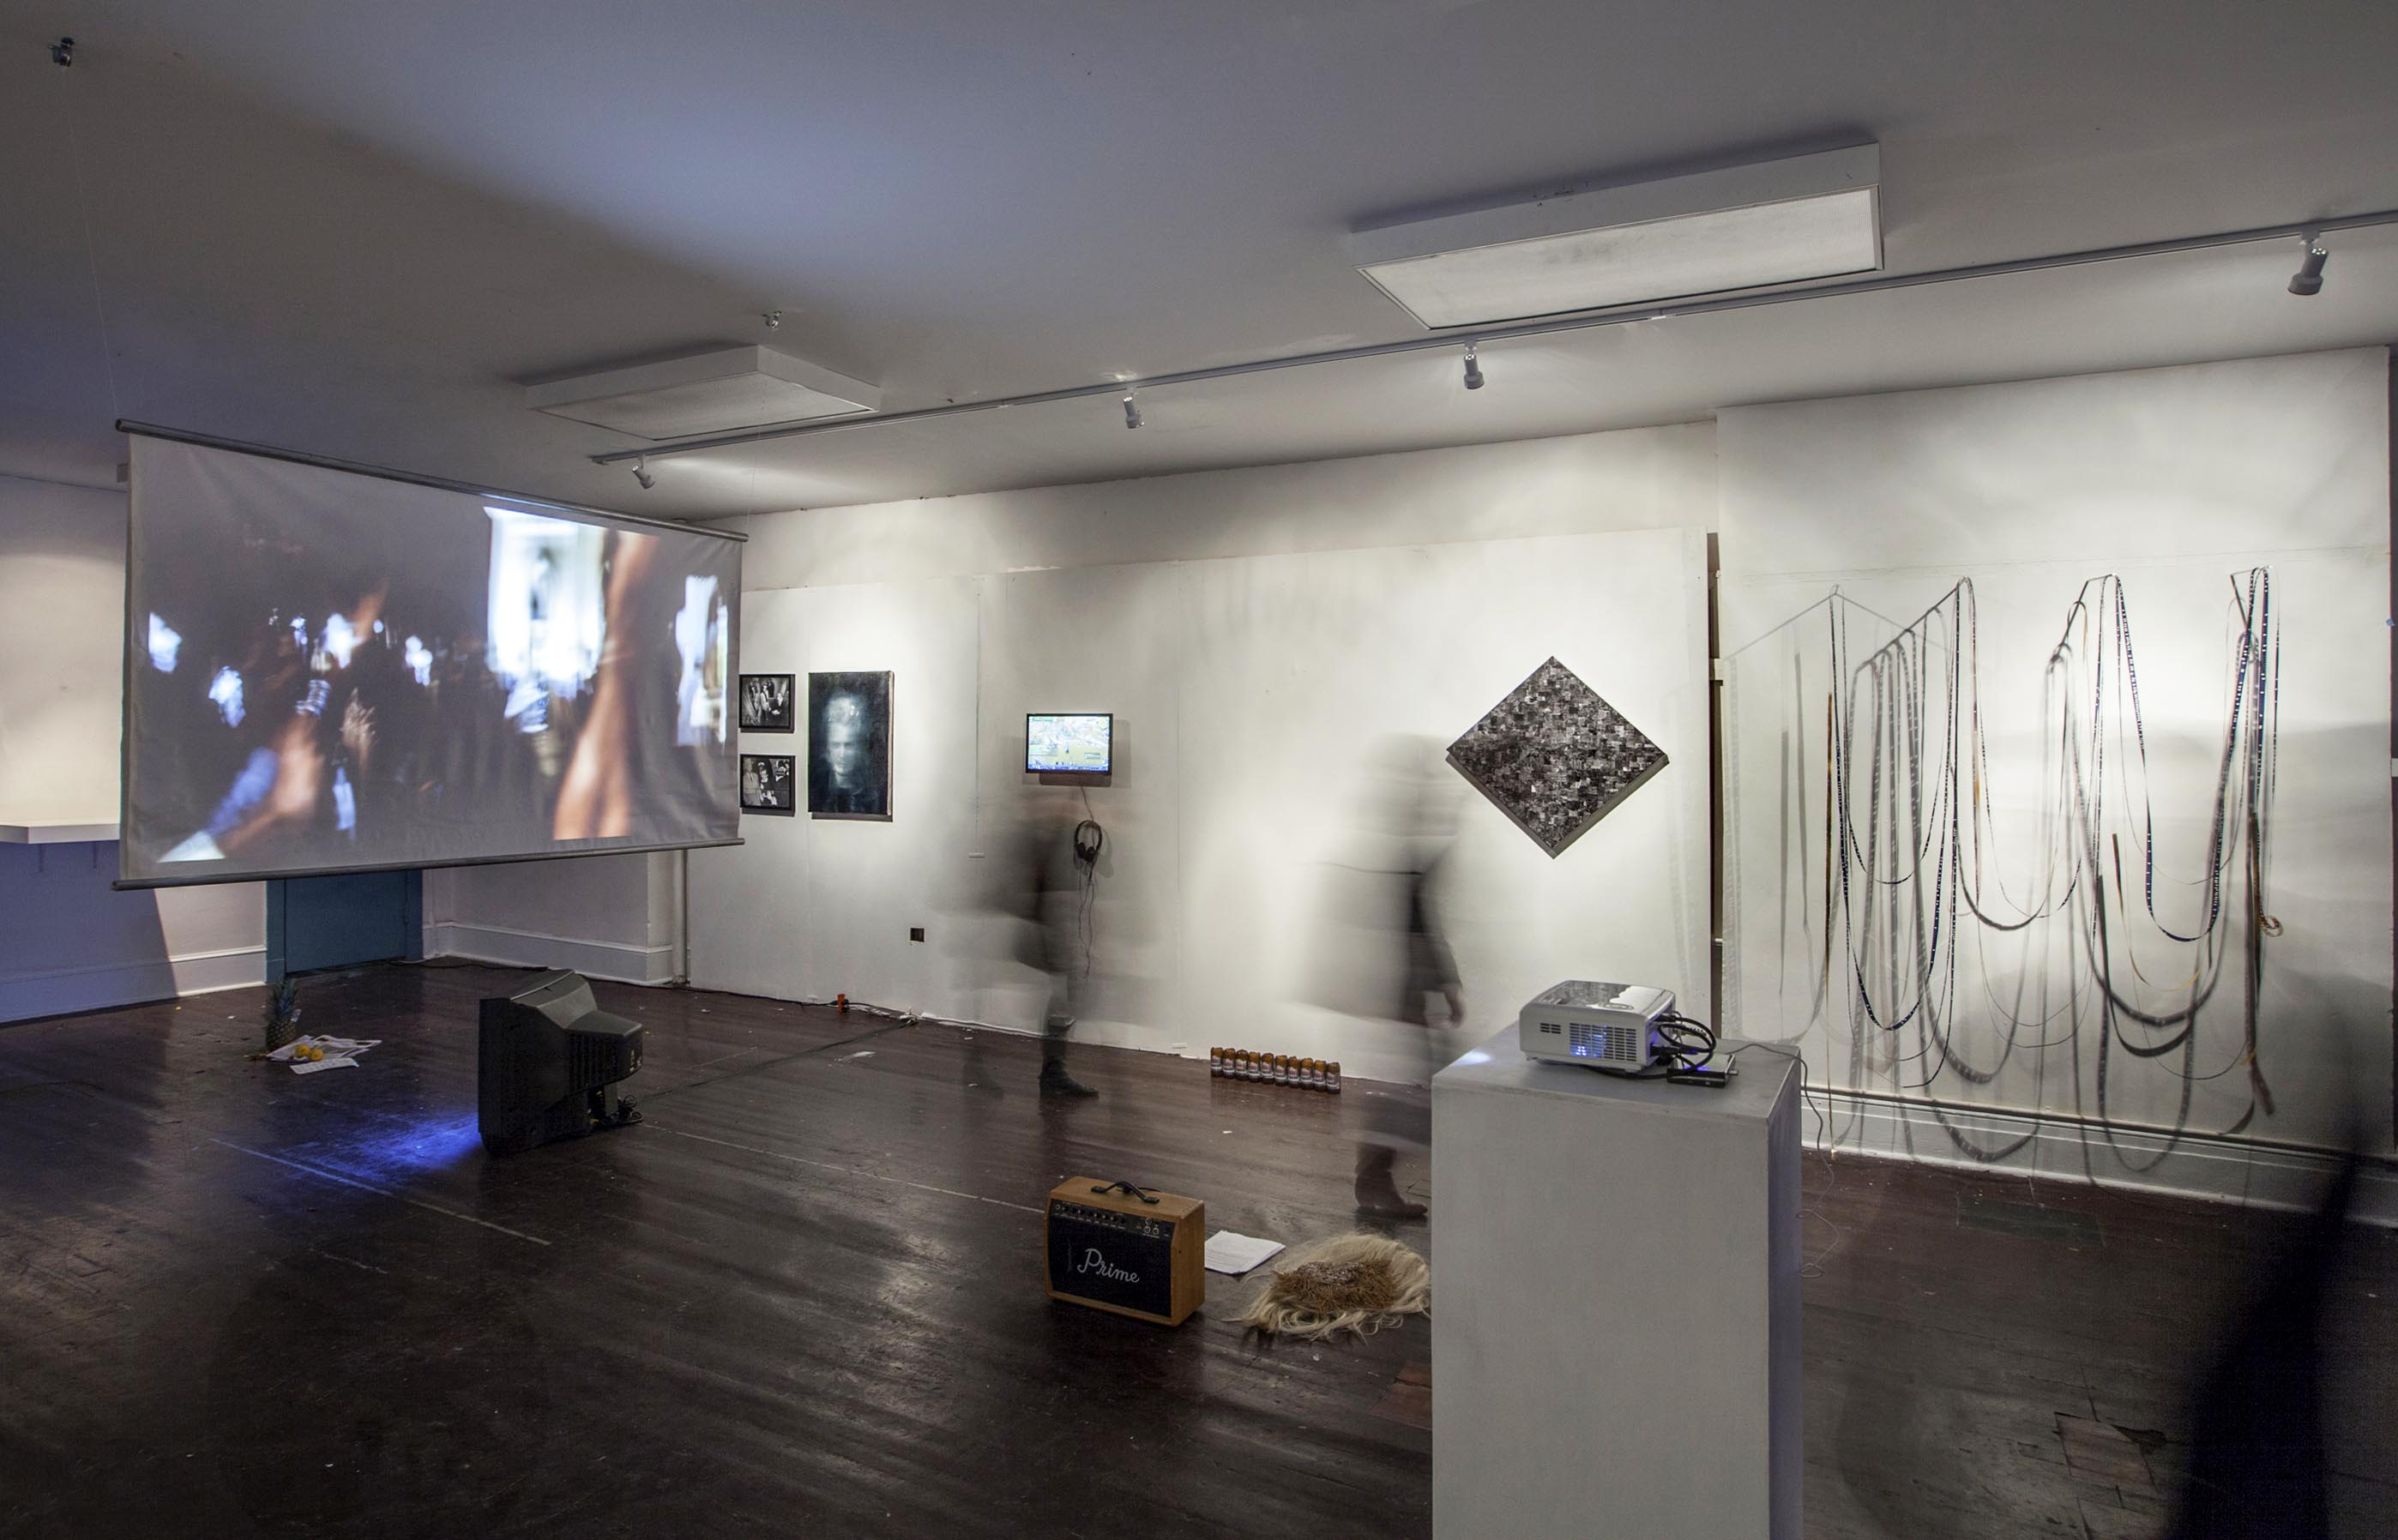 SPRING/BREAK, 2014Installation view, The Sun That Never Sets: Spectacle and Normalcy in Time, Curated by Vanessa Albury & Rachel RamplemanPhoto credit Aaron Alden